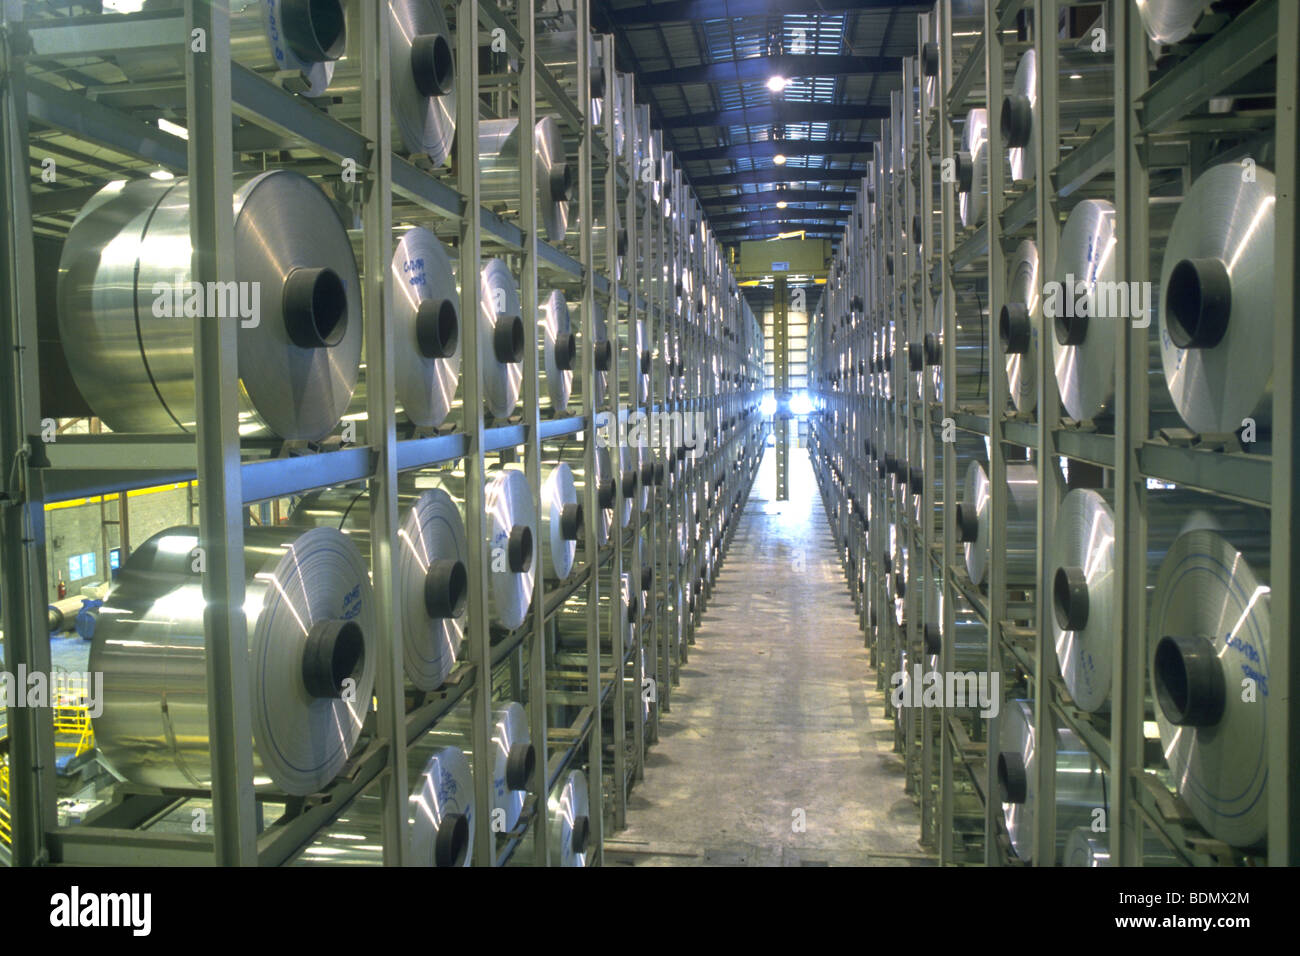 Aluminum can manufacturing facility - Stock Image